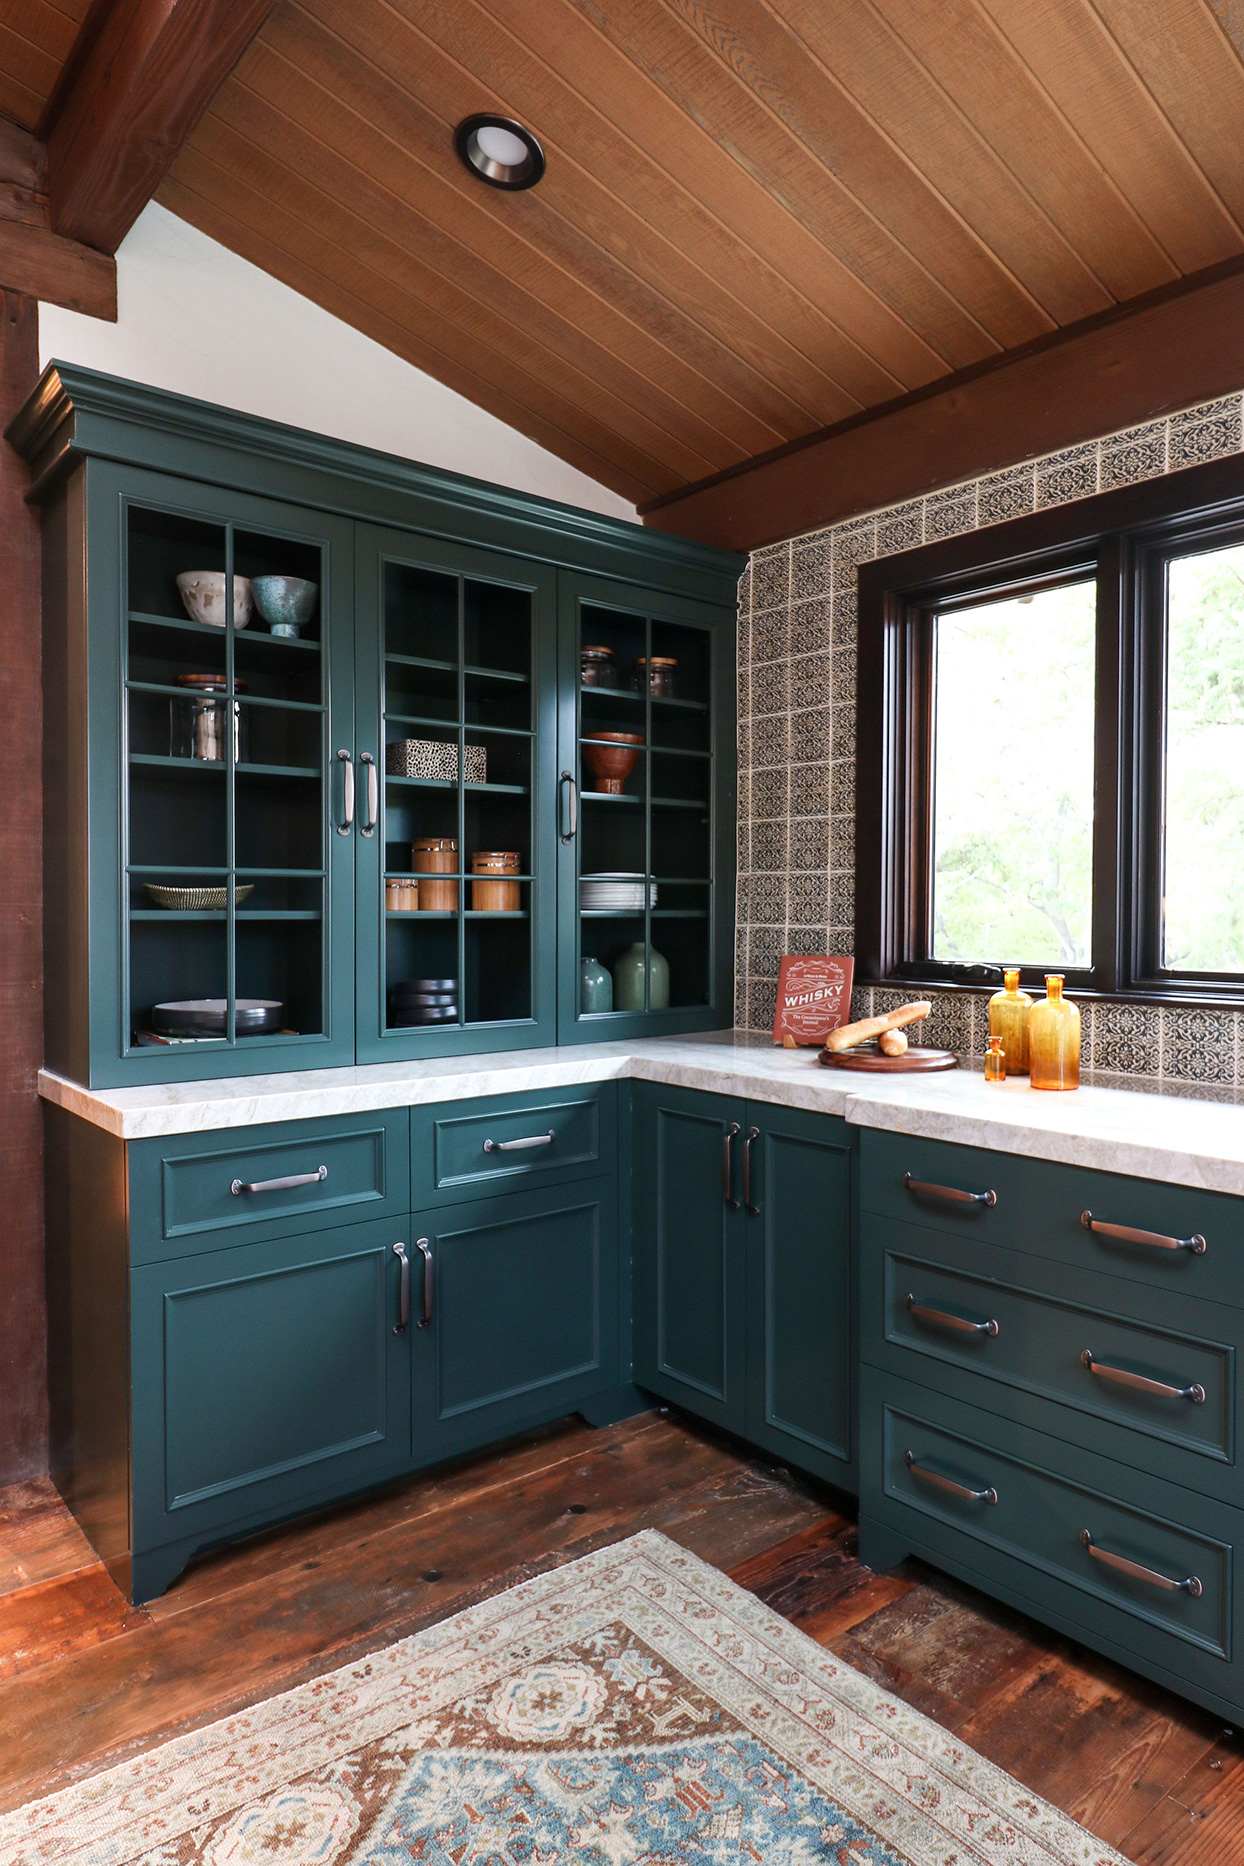 blue-green and earth hues kitchen with tiled backsplash